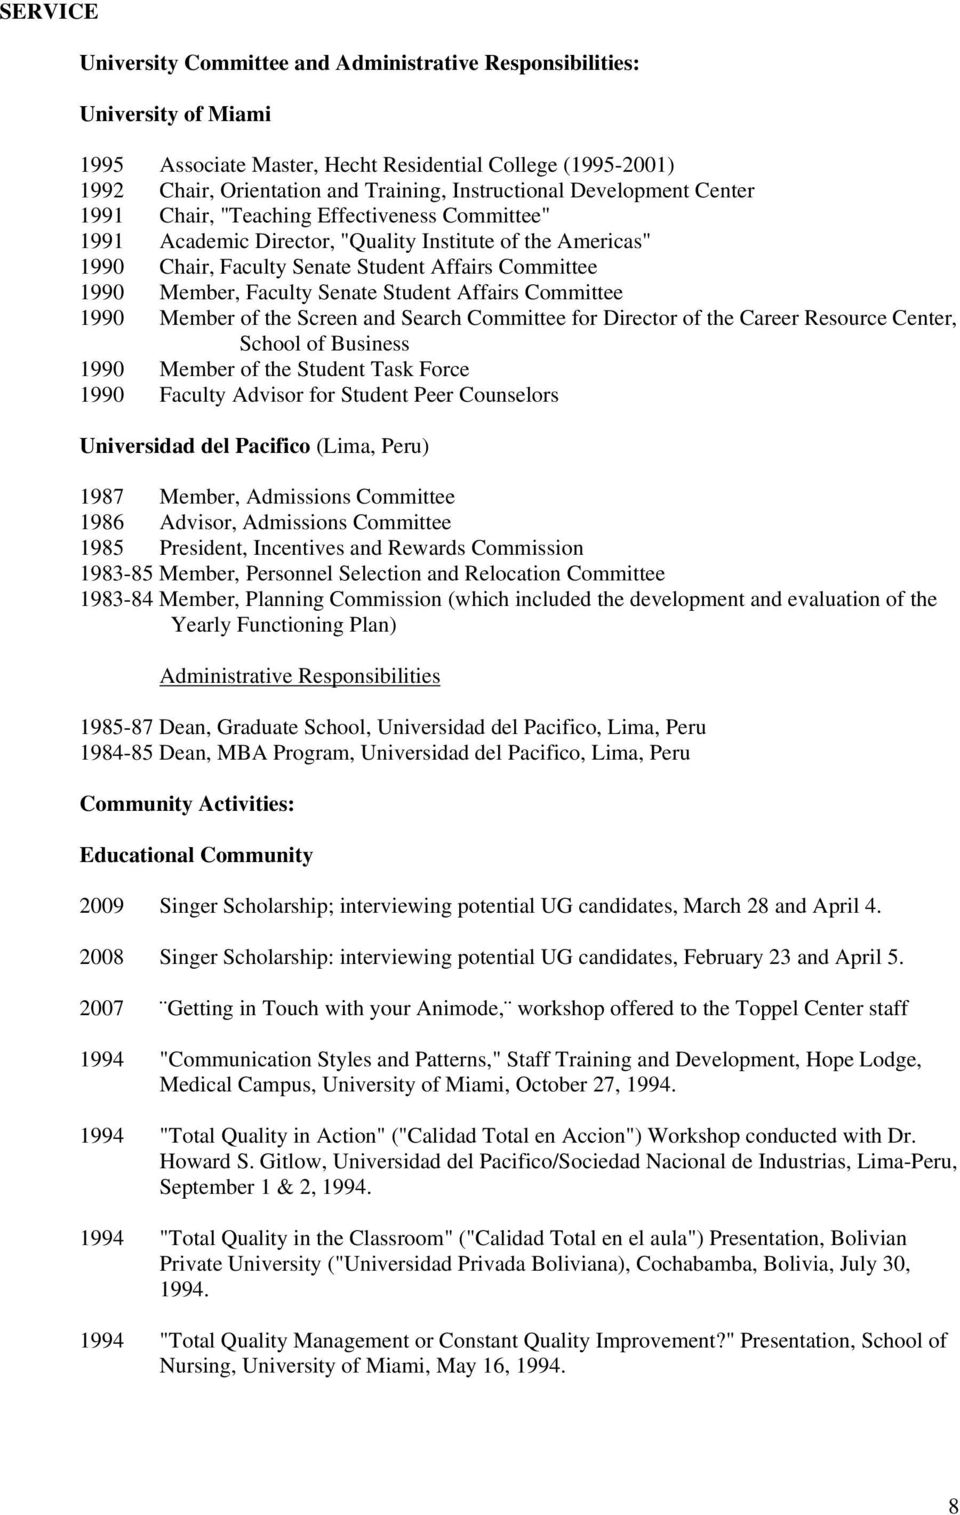 Senate Student Affairs Committee 1990 Member of the Screen and Search Committee for Director of the Career Resource Center, School of Business 1990 Member of the Student Task Force 1990 Faculty